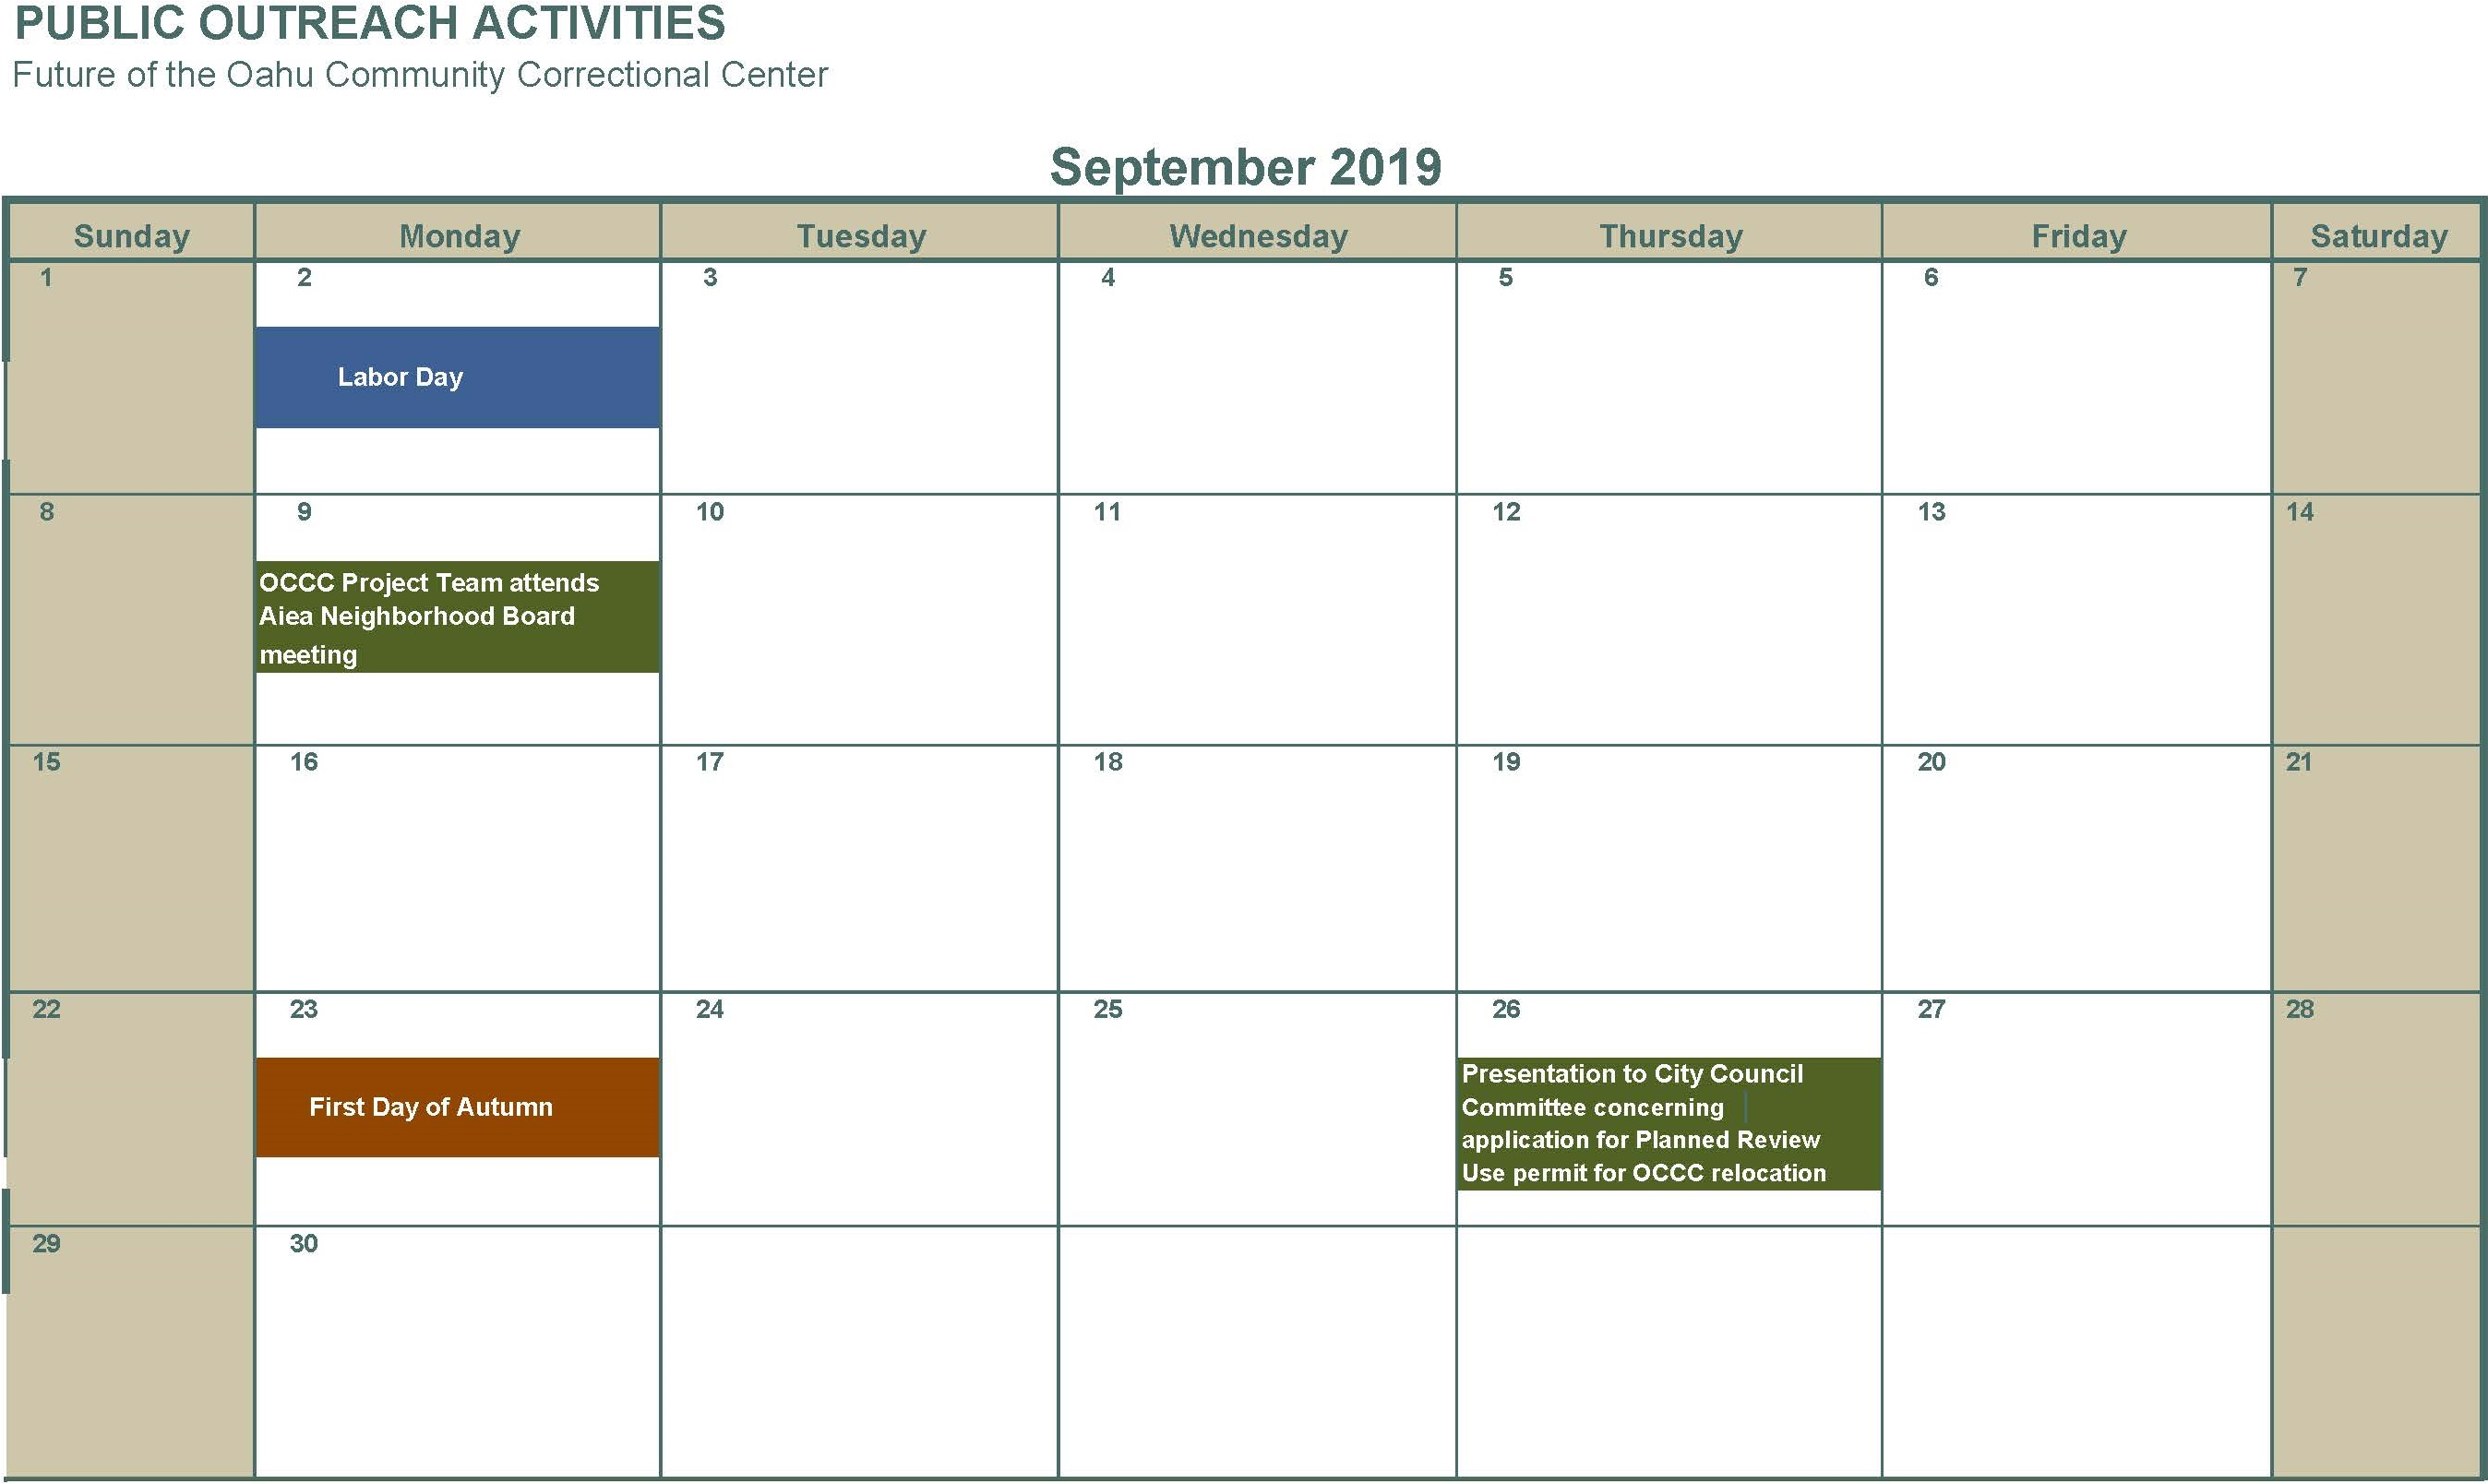 September 2019 no activities listed